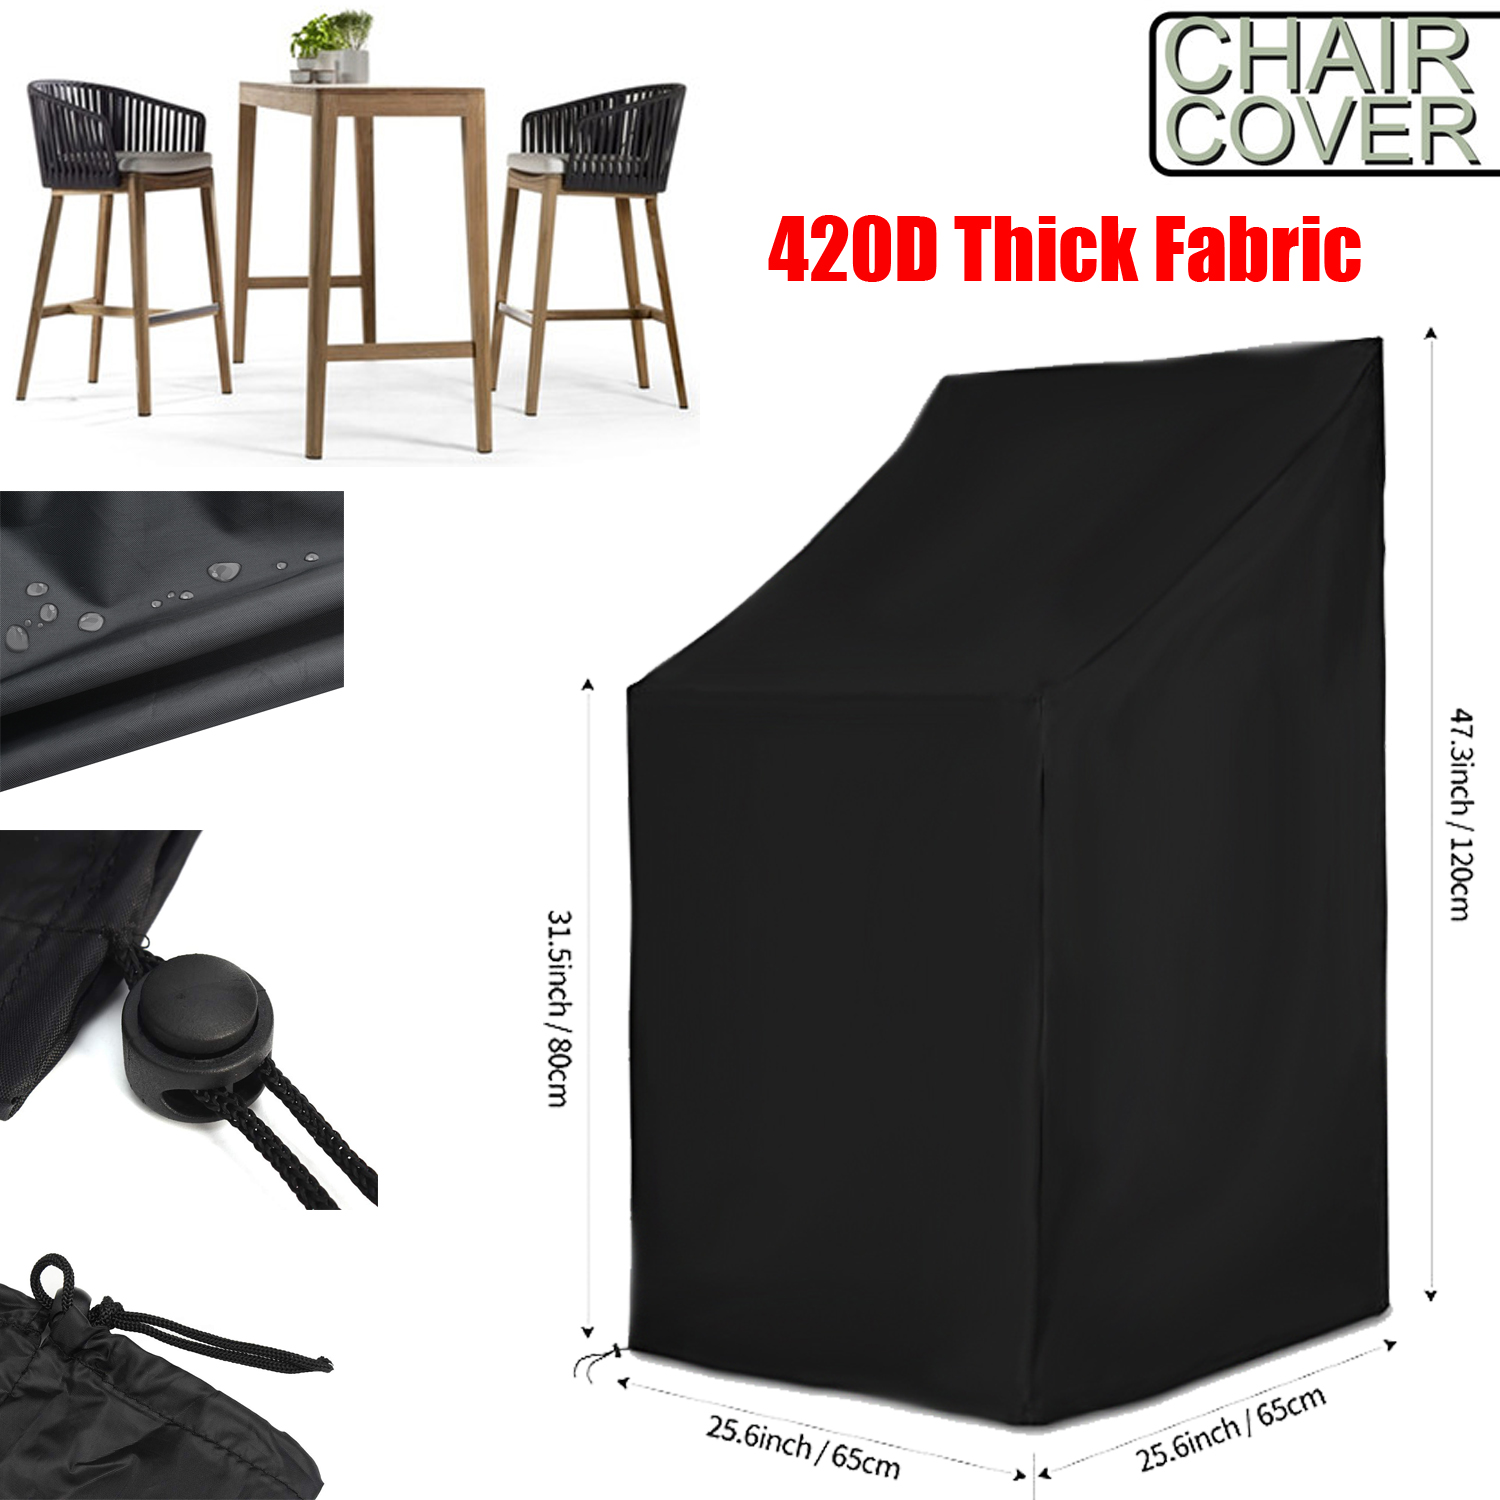 Furniture Chair Cover Waterproof Outdoor Garden Beach High Back Patio Single Chair Covers High Quality Furniture Protection All Purpose Covers Aliexpress